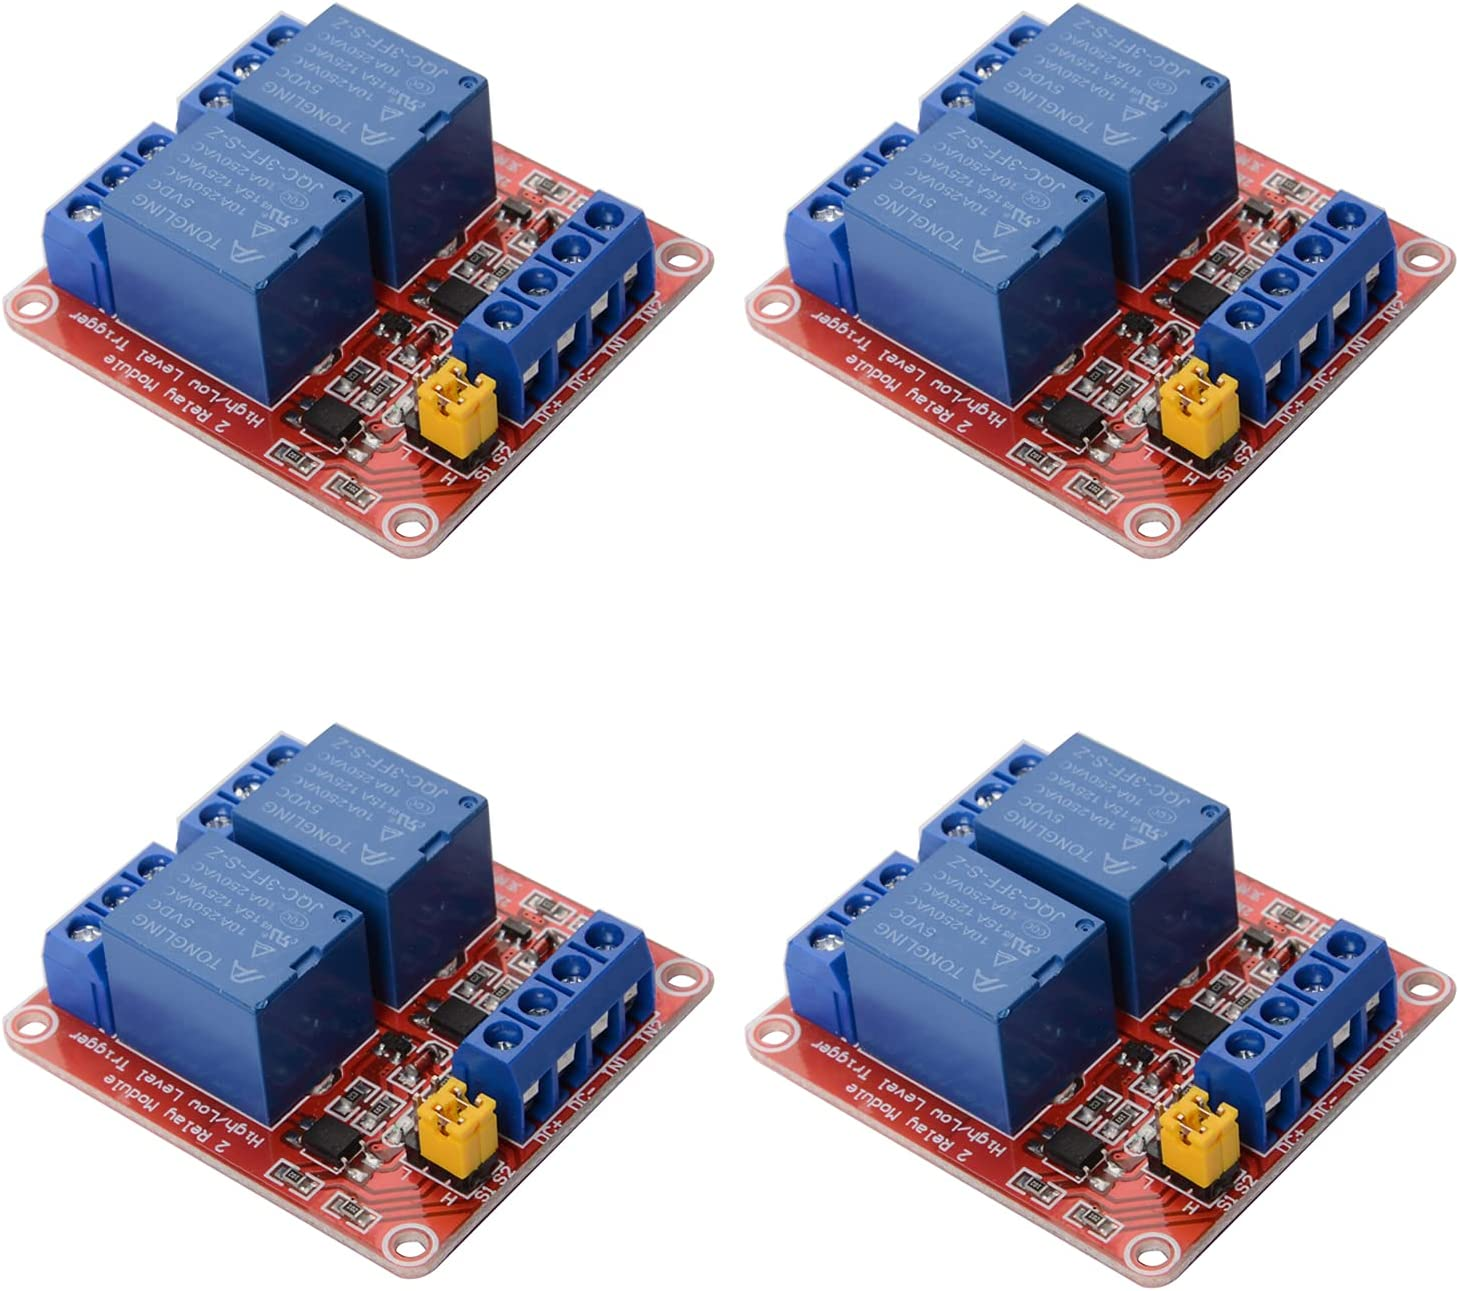 R REIFENG 4pcs 2 Channel 5V Relay Module Board Shield with Optocoupler Isolation Support High/Low Level Trigger